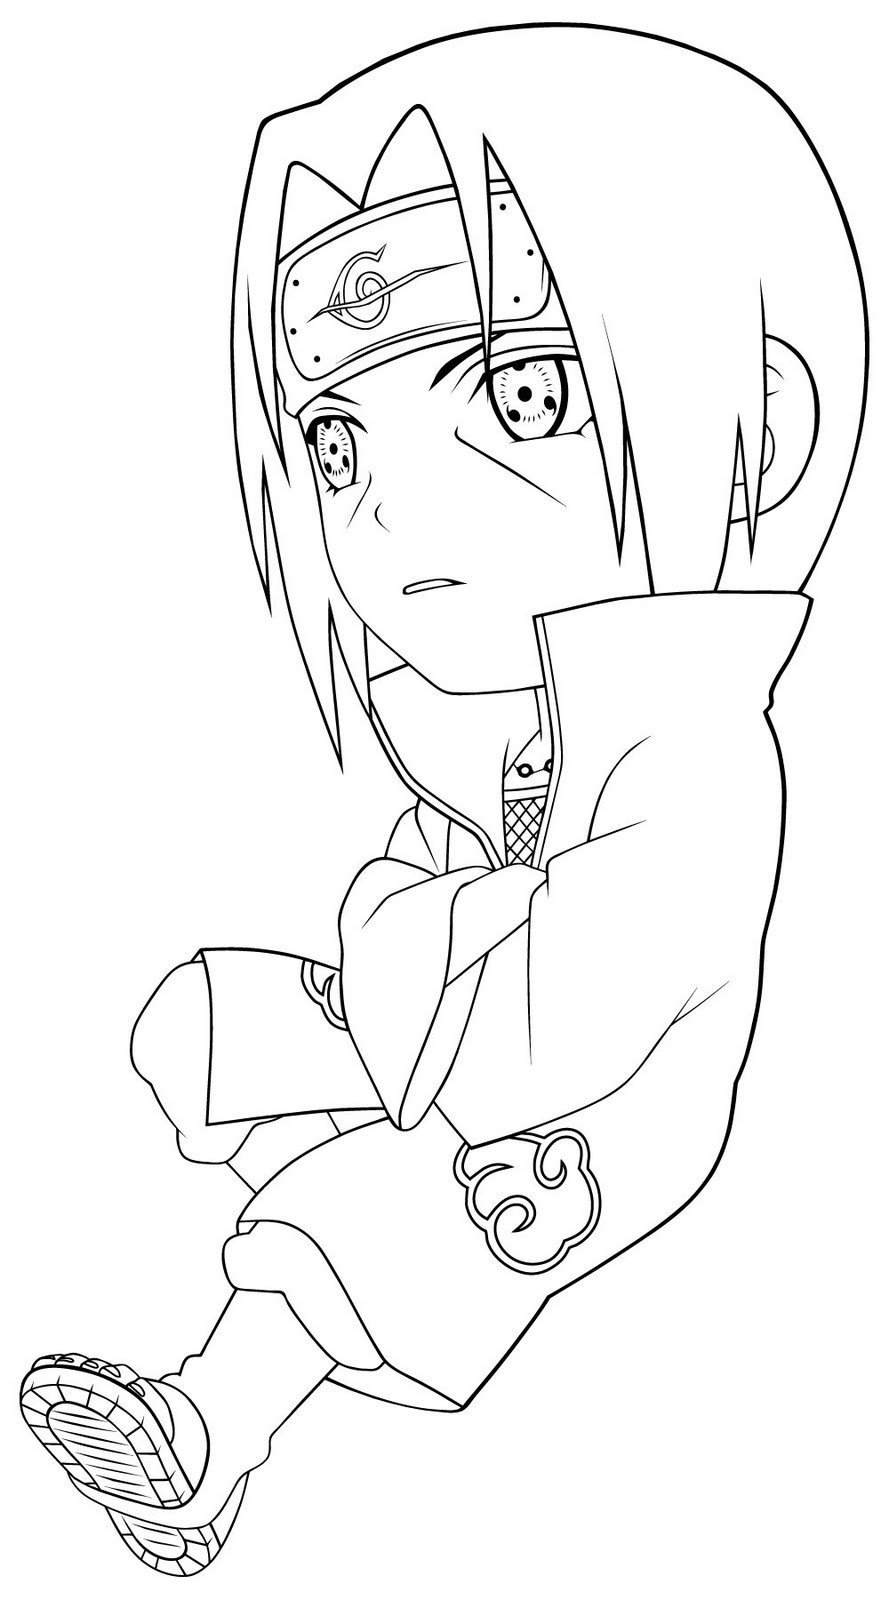 Printable Coloring Pages: Naruto Coloring Pages encequiconcerne Coloriage Naruto